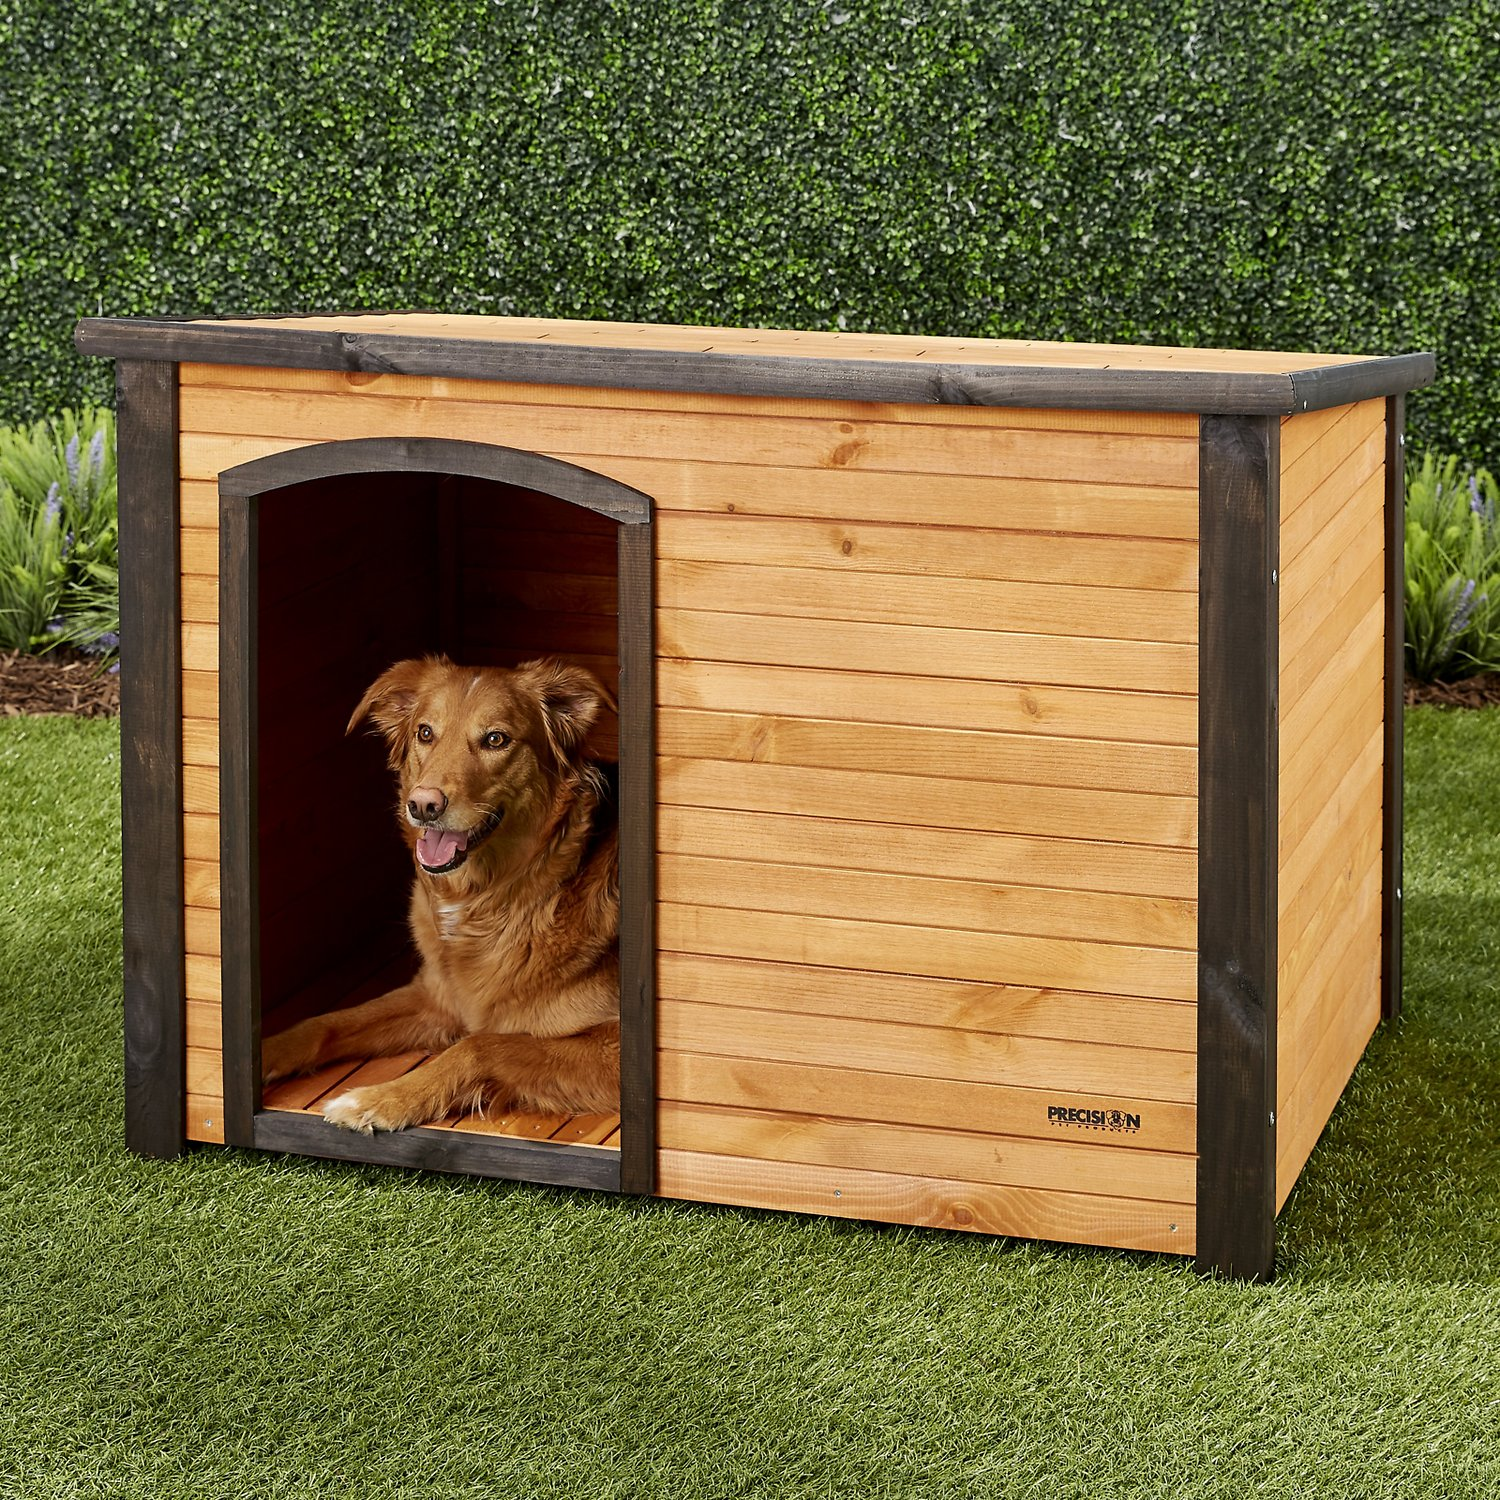 Precision pet products outback log cabin dog house large for Outback log cabin dog house